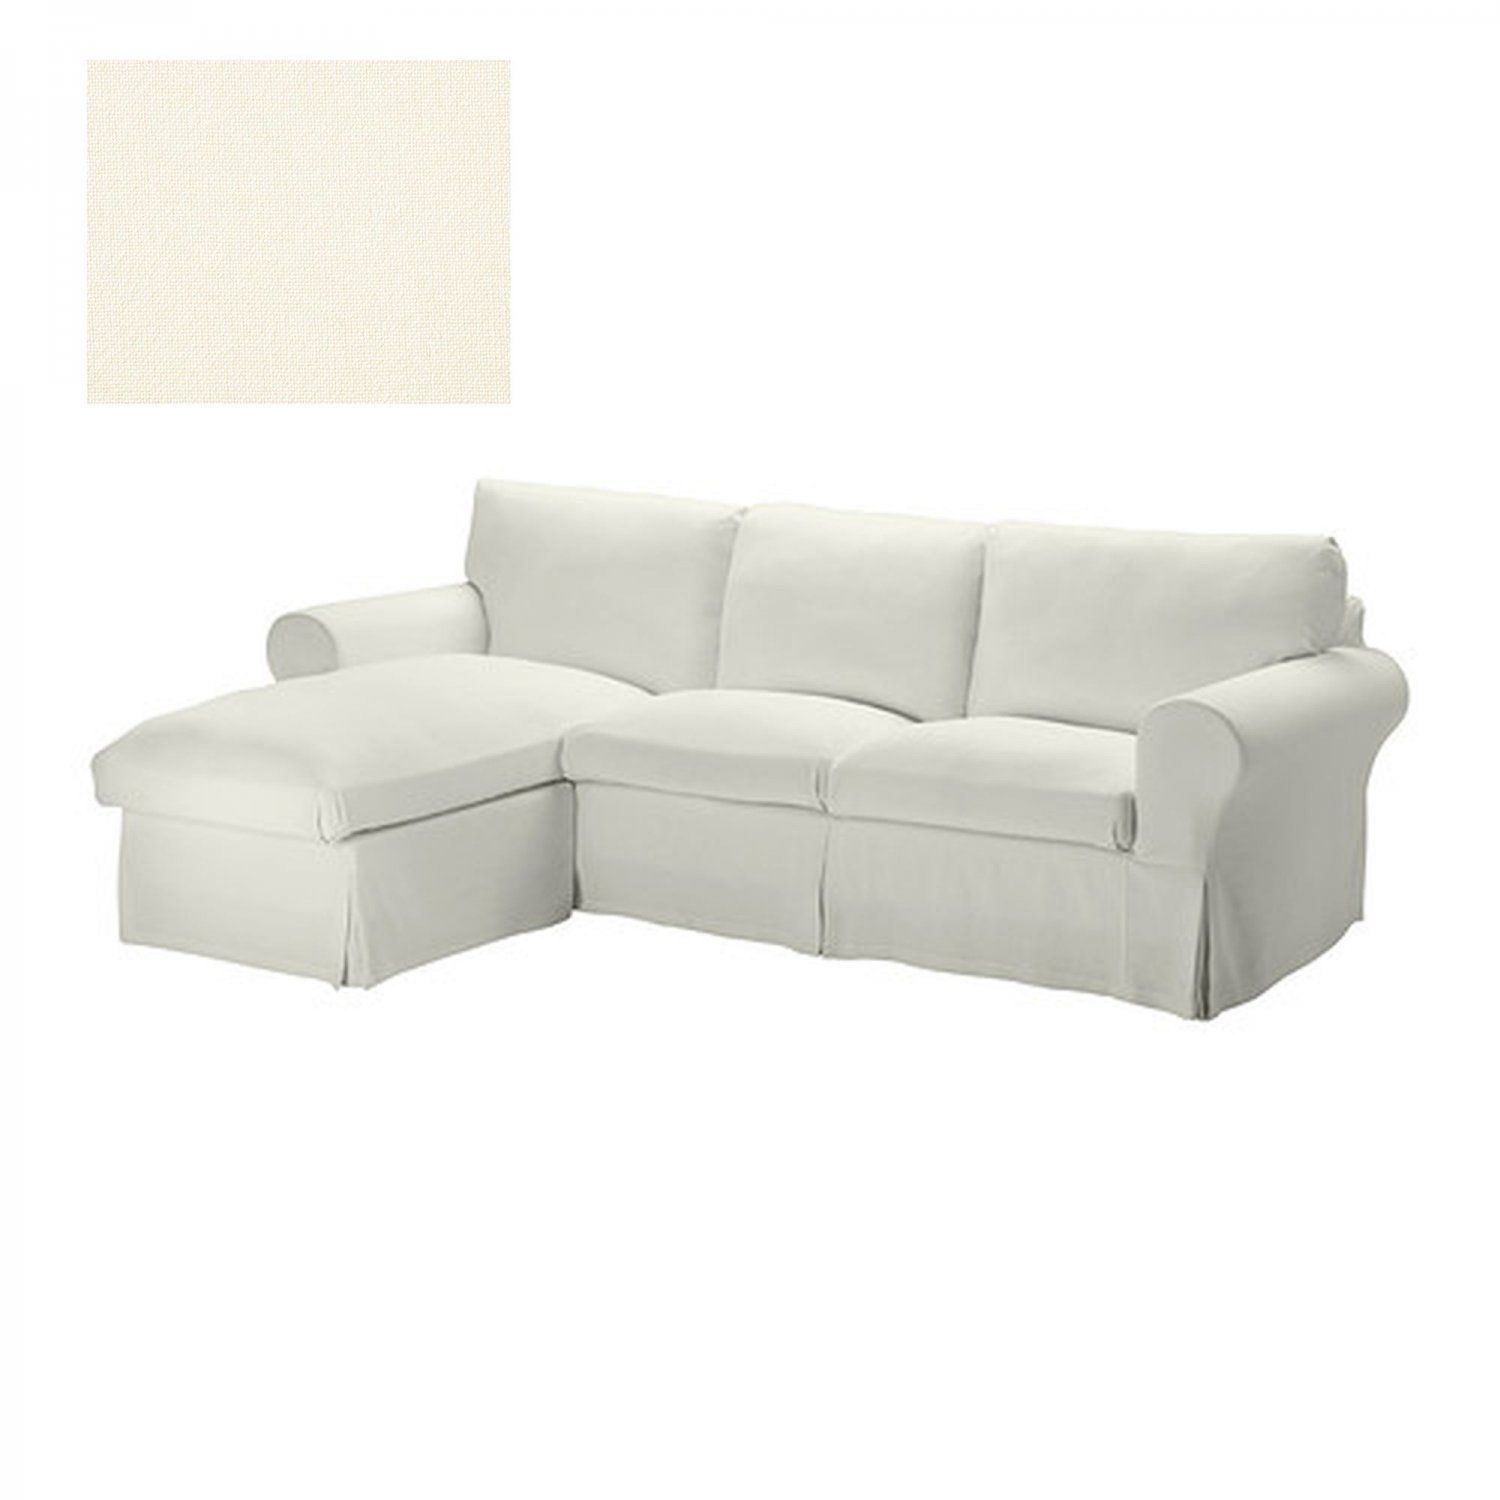 ikea ektorp loveseat sofa w chaise slipcover 3 seat sectional cover stenasa white sten sa linen. Black Bedroom Furniture Sets. Home Design Ideas